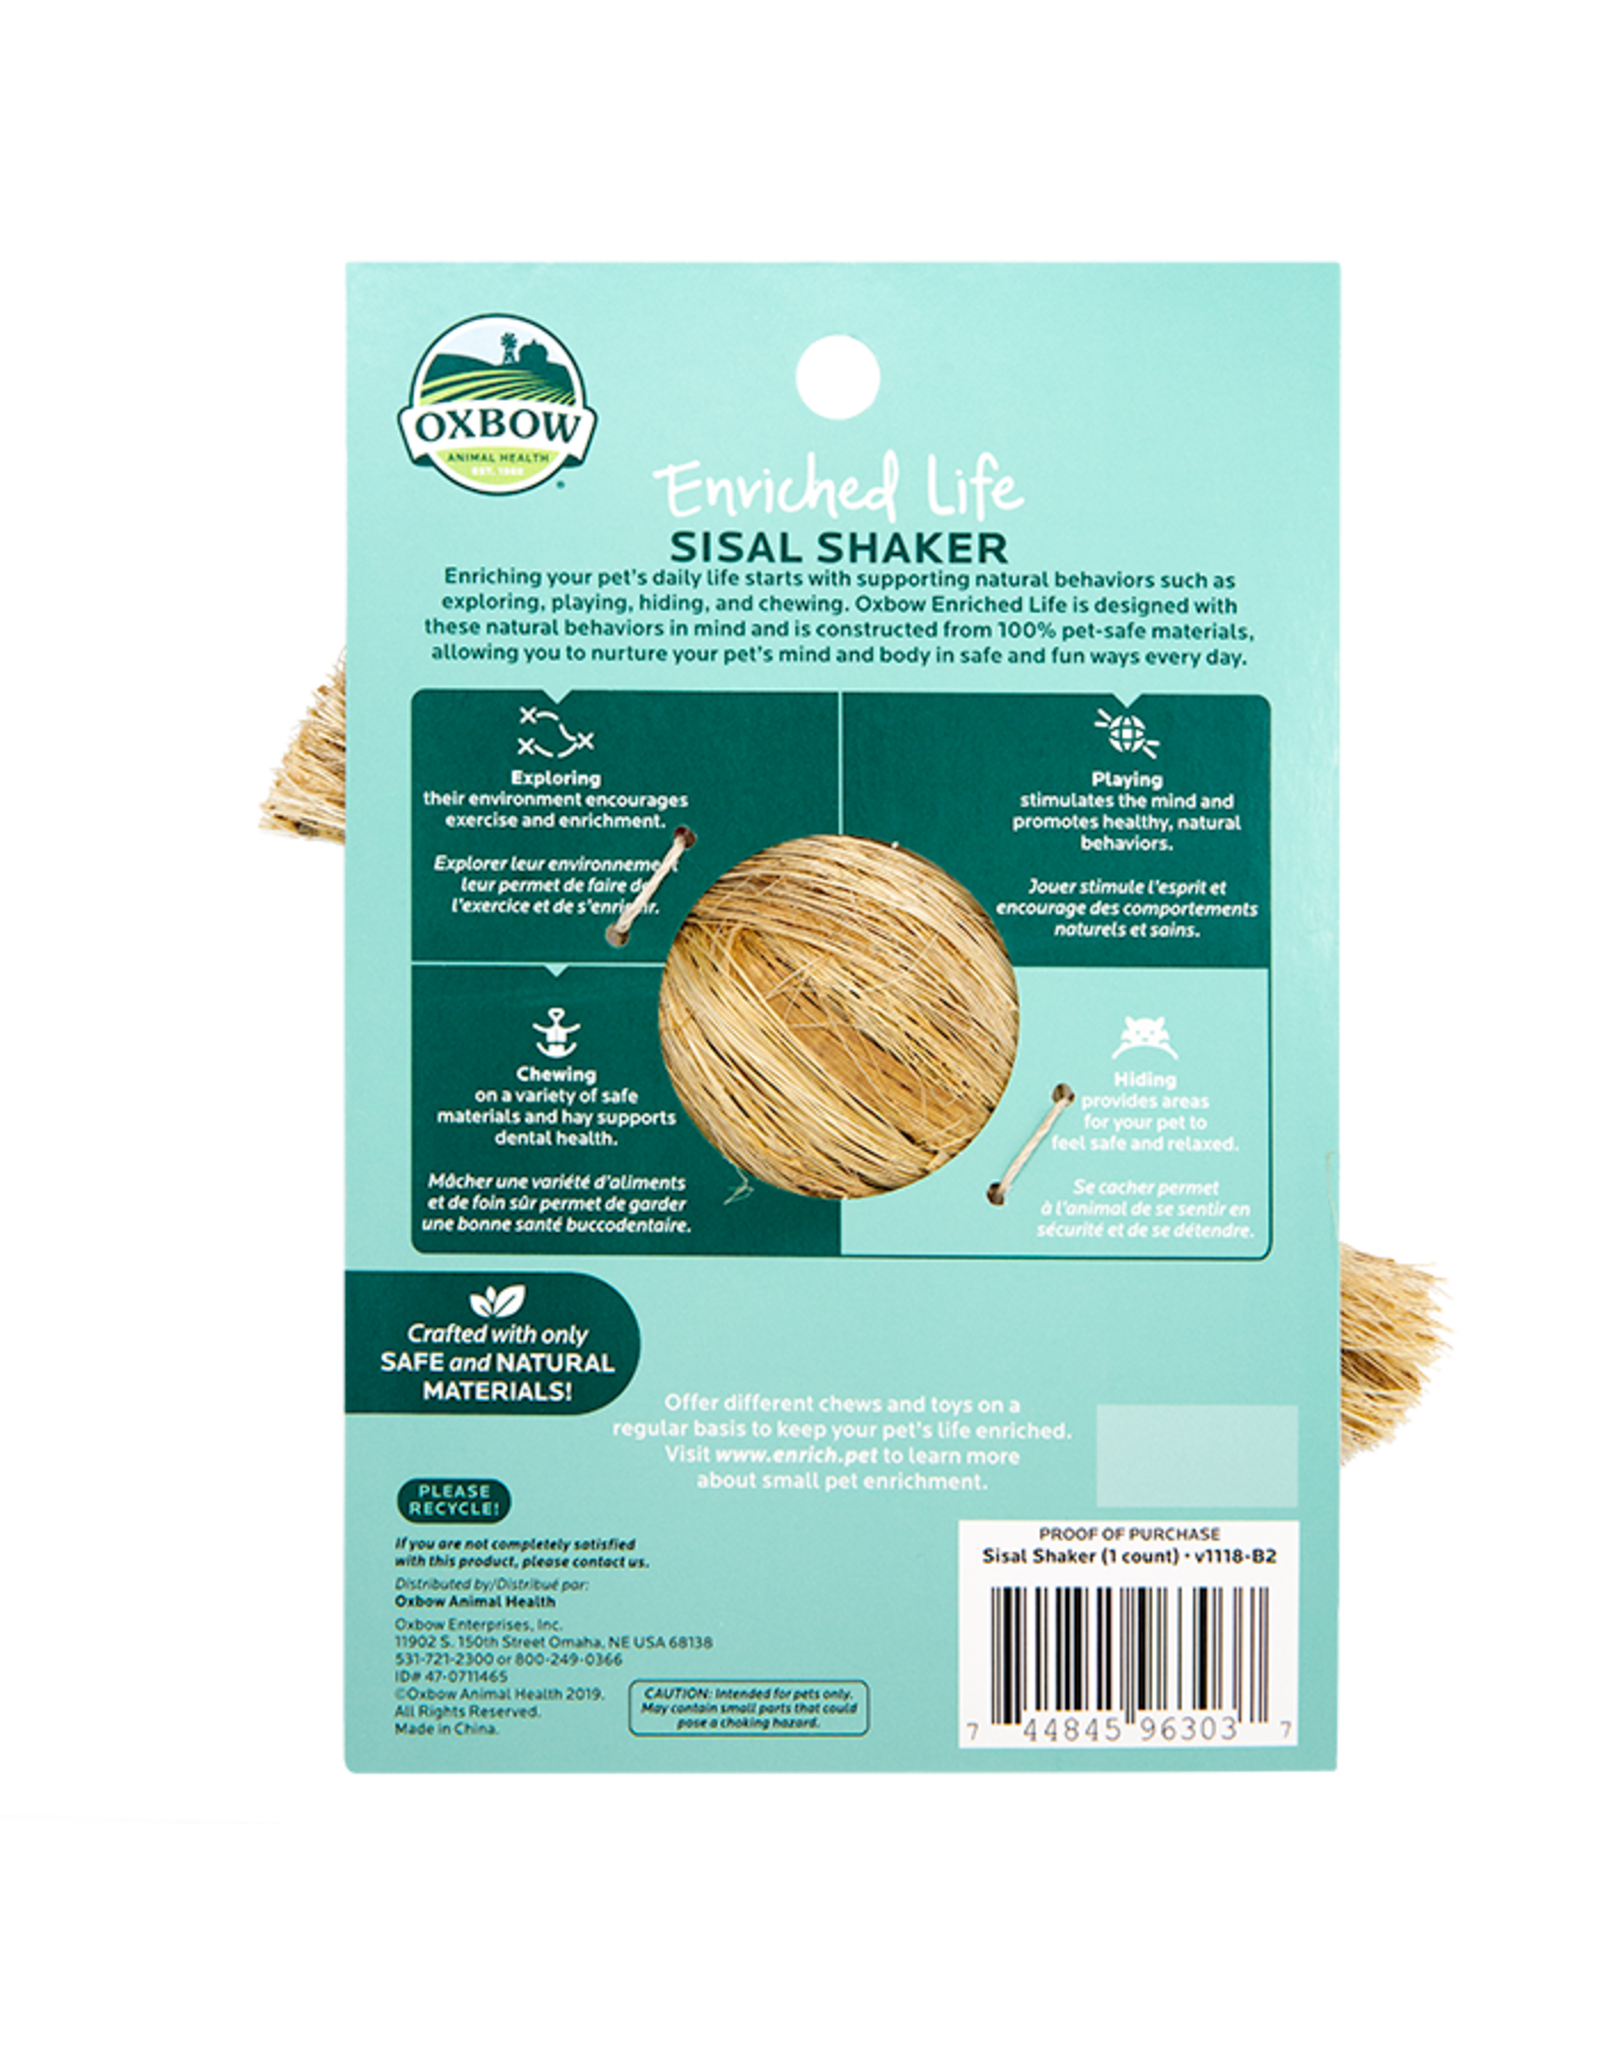 Oxbow OXBOW Enriched Life Sisal Shaker Natural Chew 6.5' Length